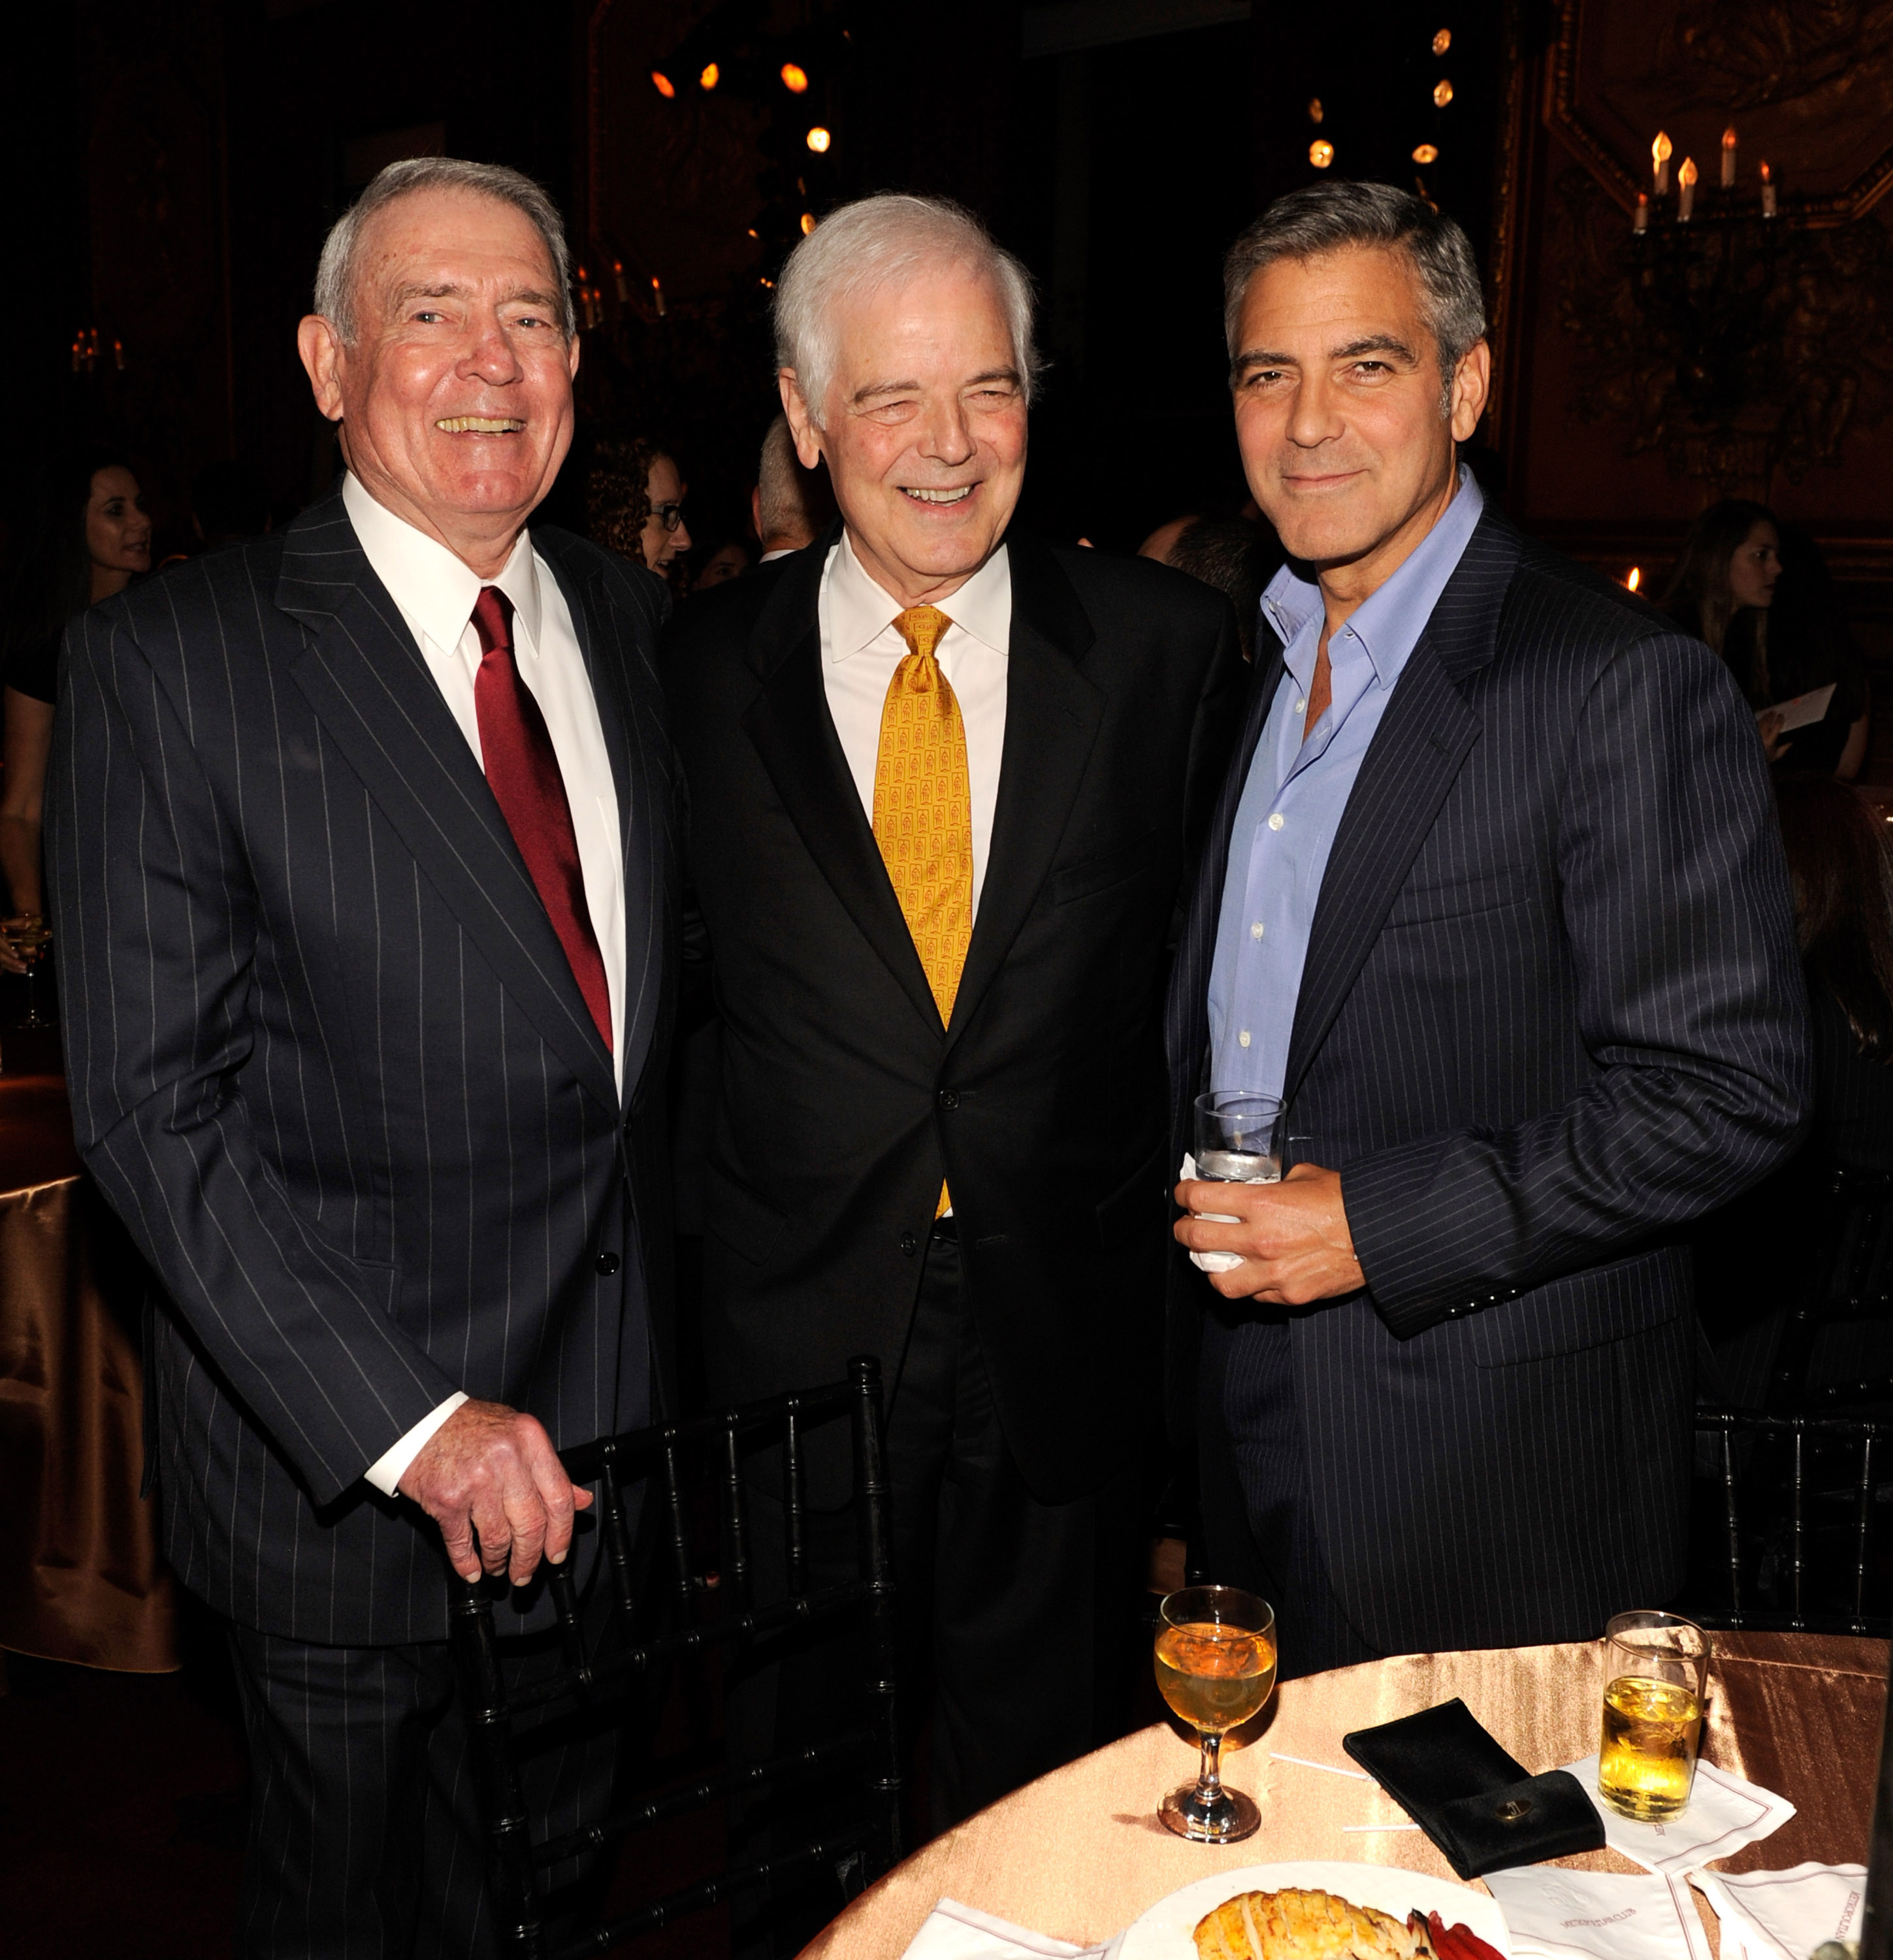 Dan Rather, Nick Clooney, and George Clooney at the The Ides of March afterparty.